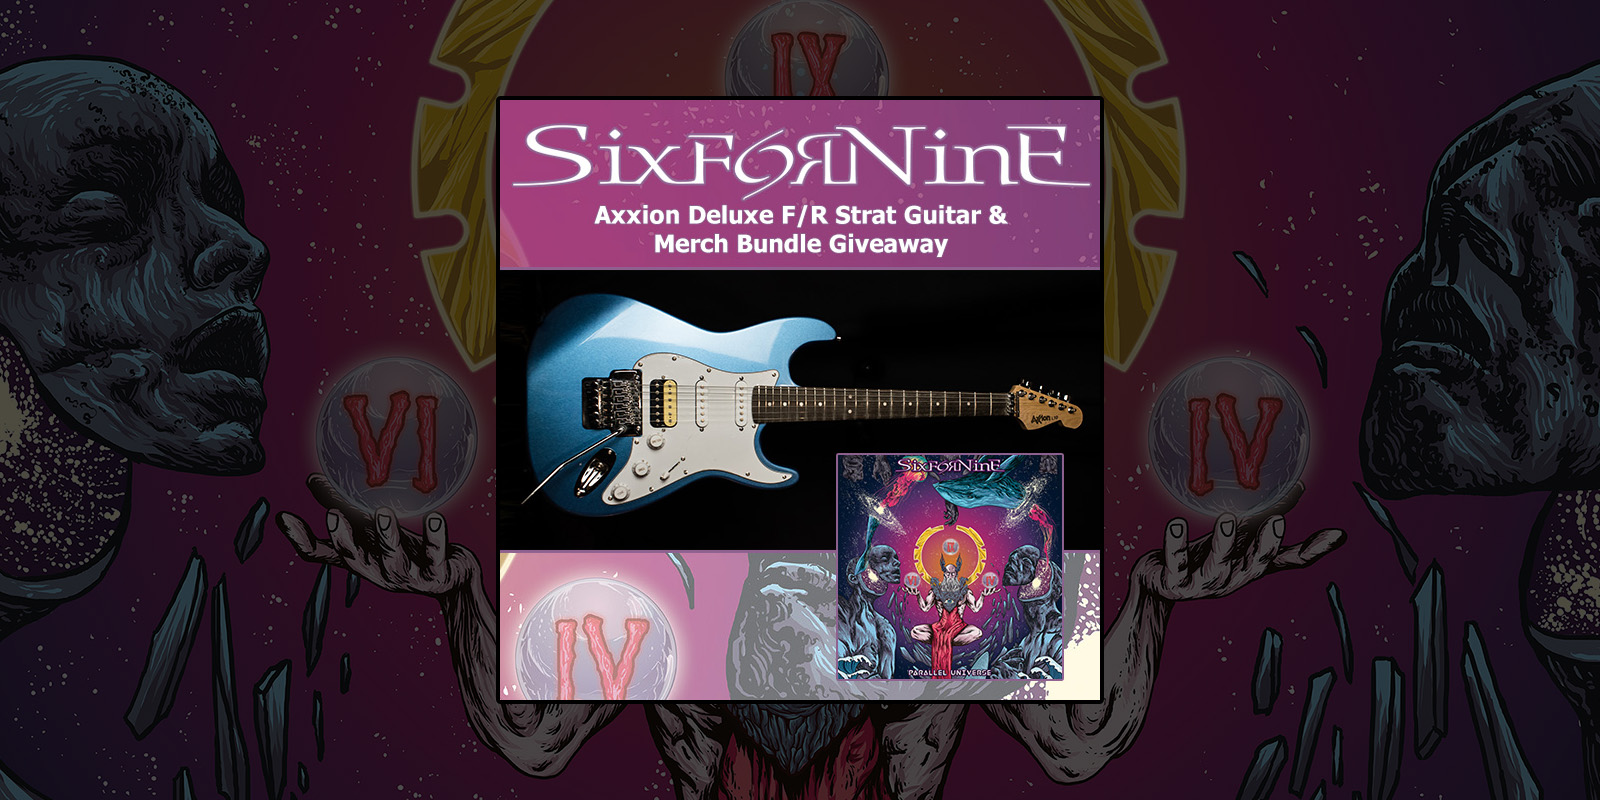 Enter to Win - Axxion Deluxe F/R Strat Guitar & Merch Giveaway